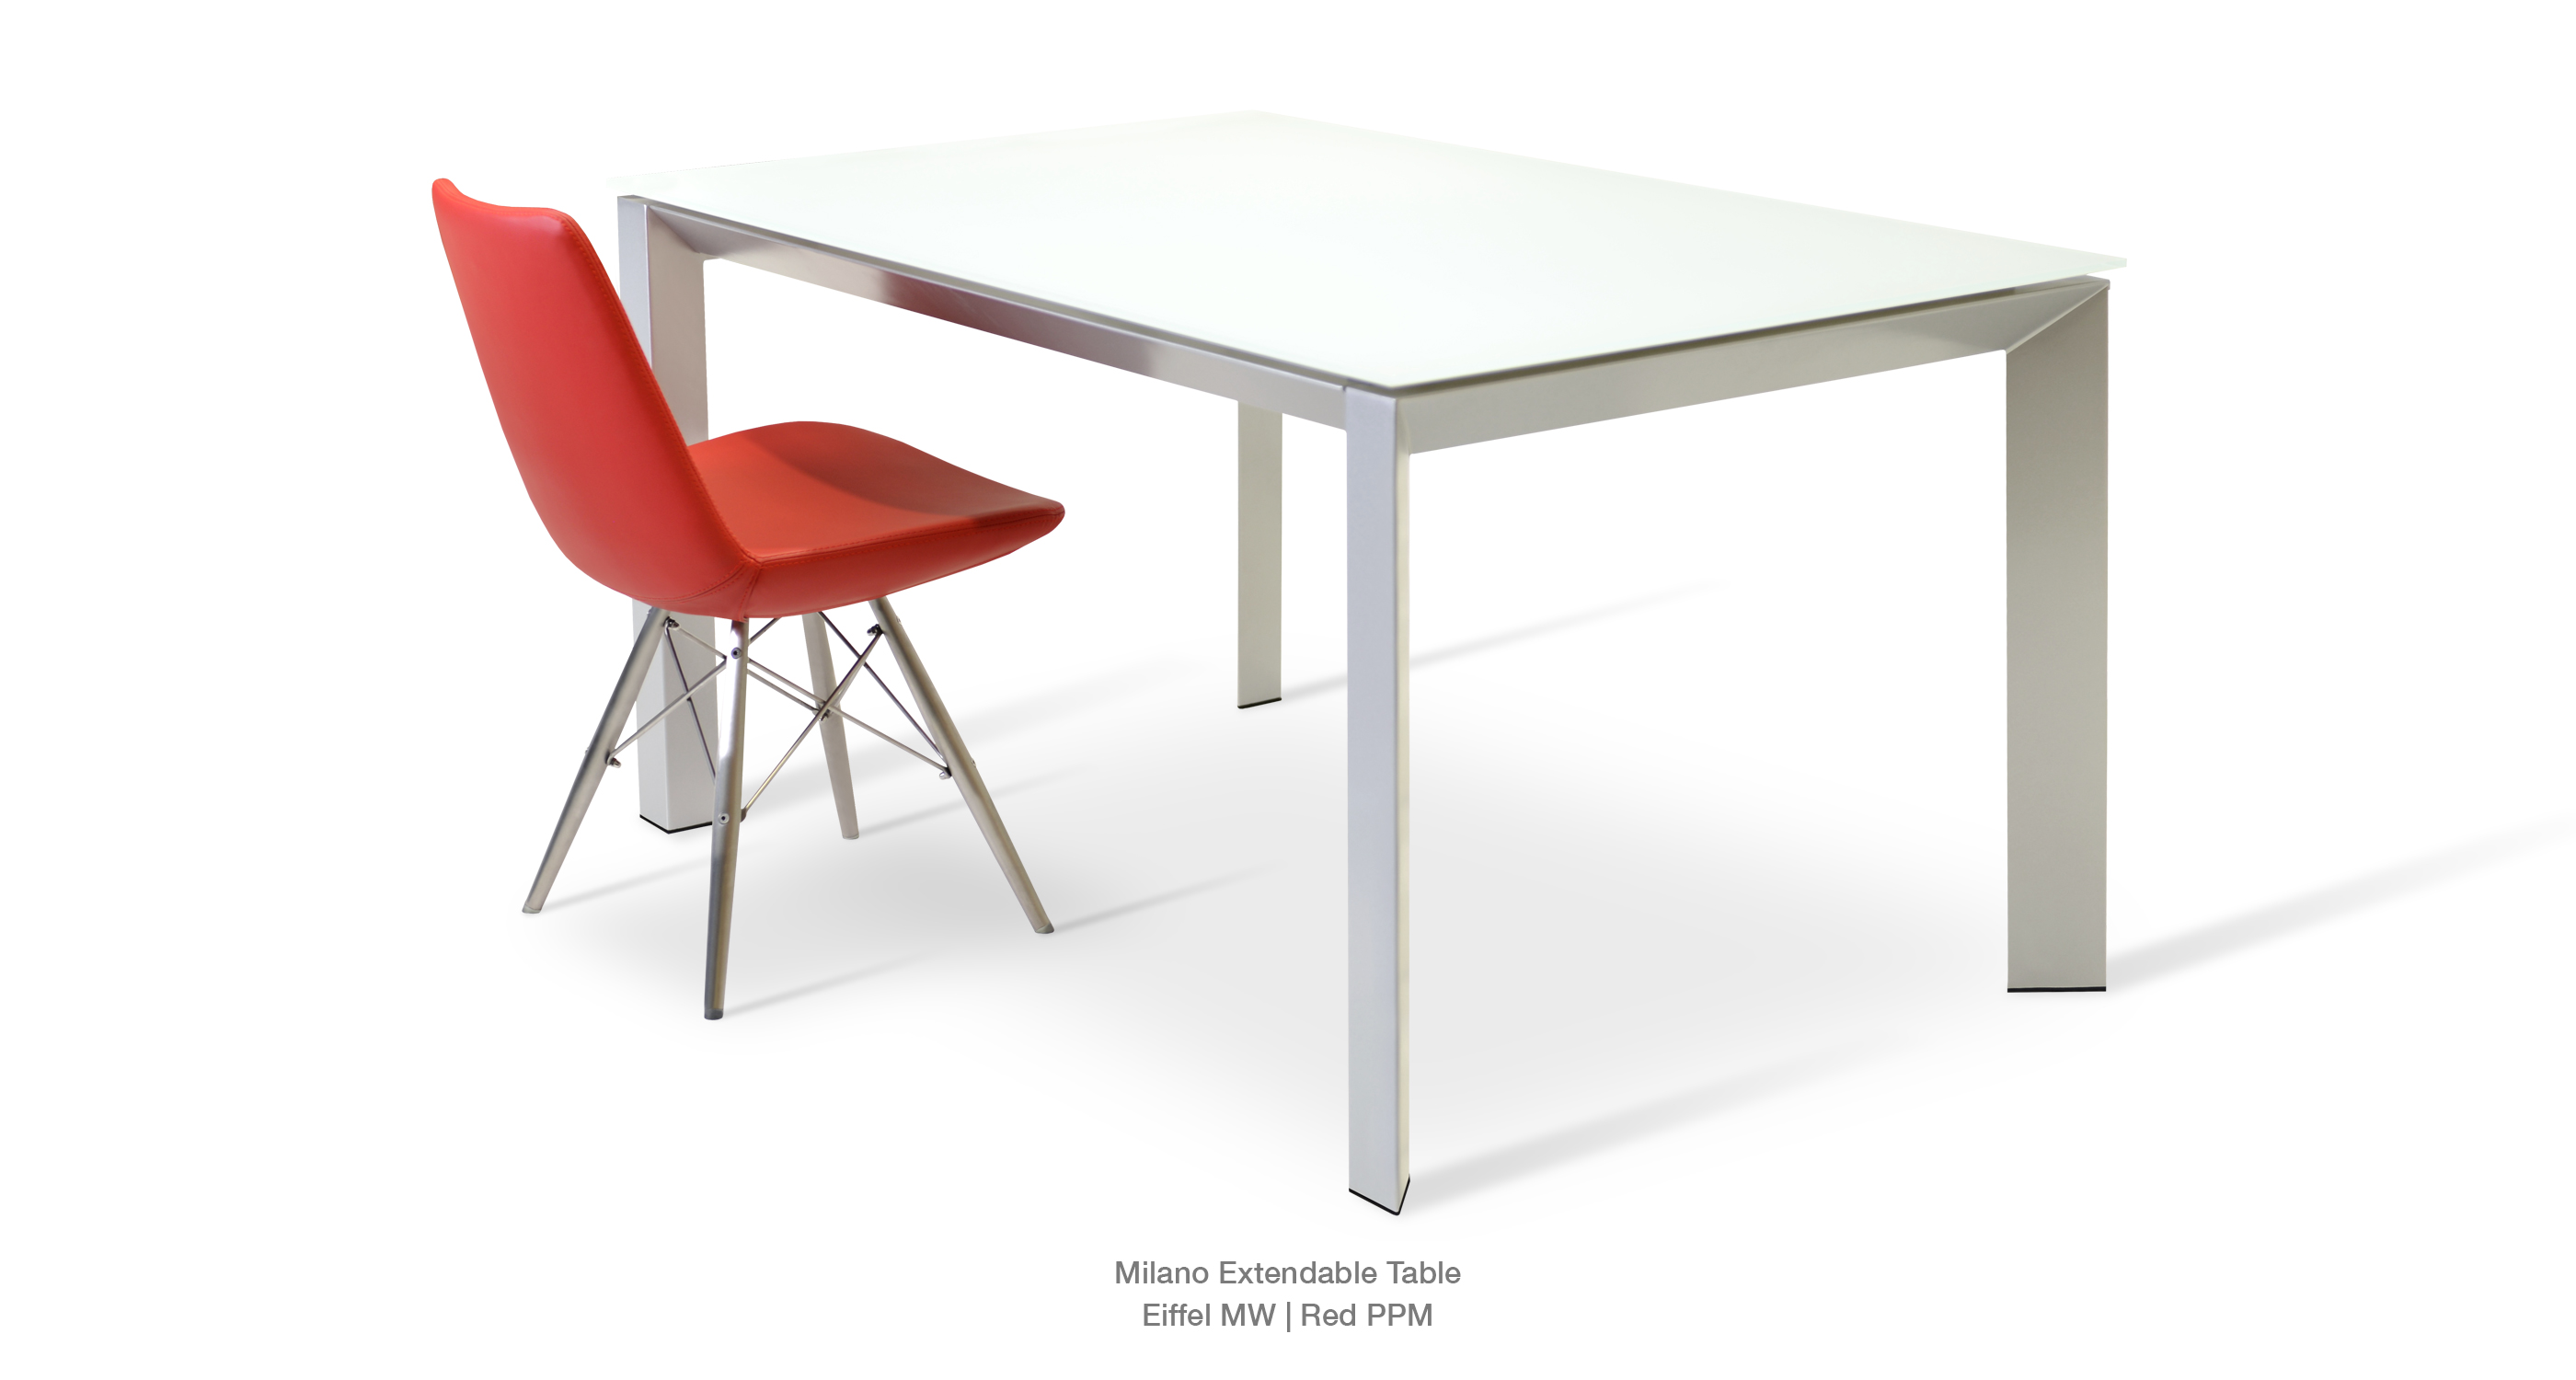 Eiffel MW with Milano Table